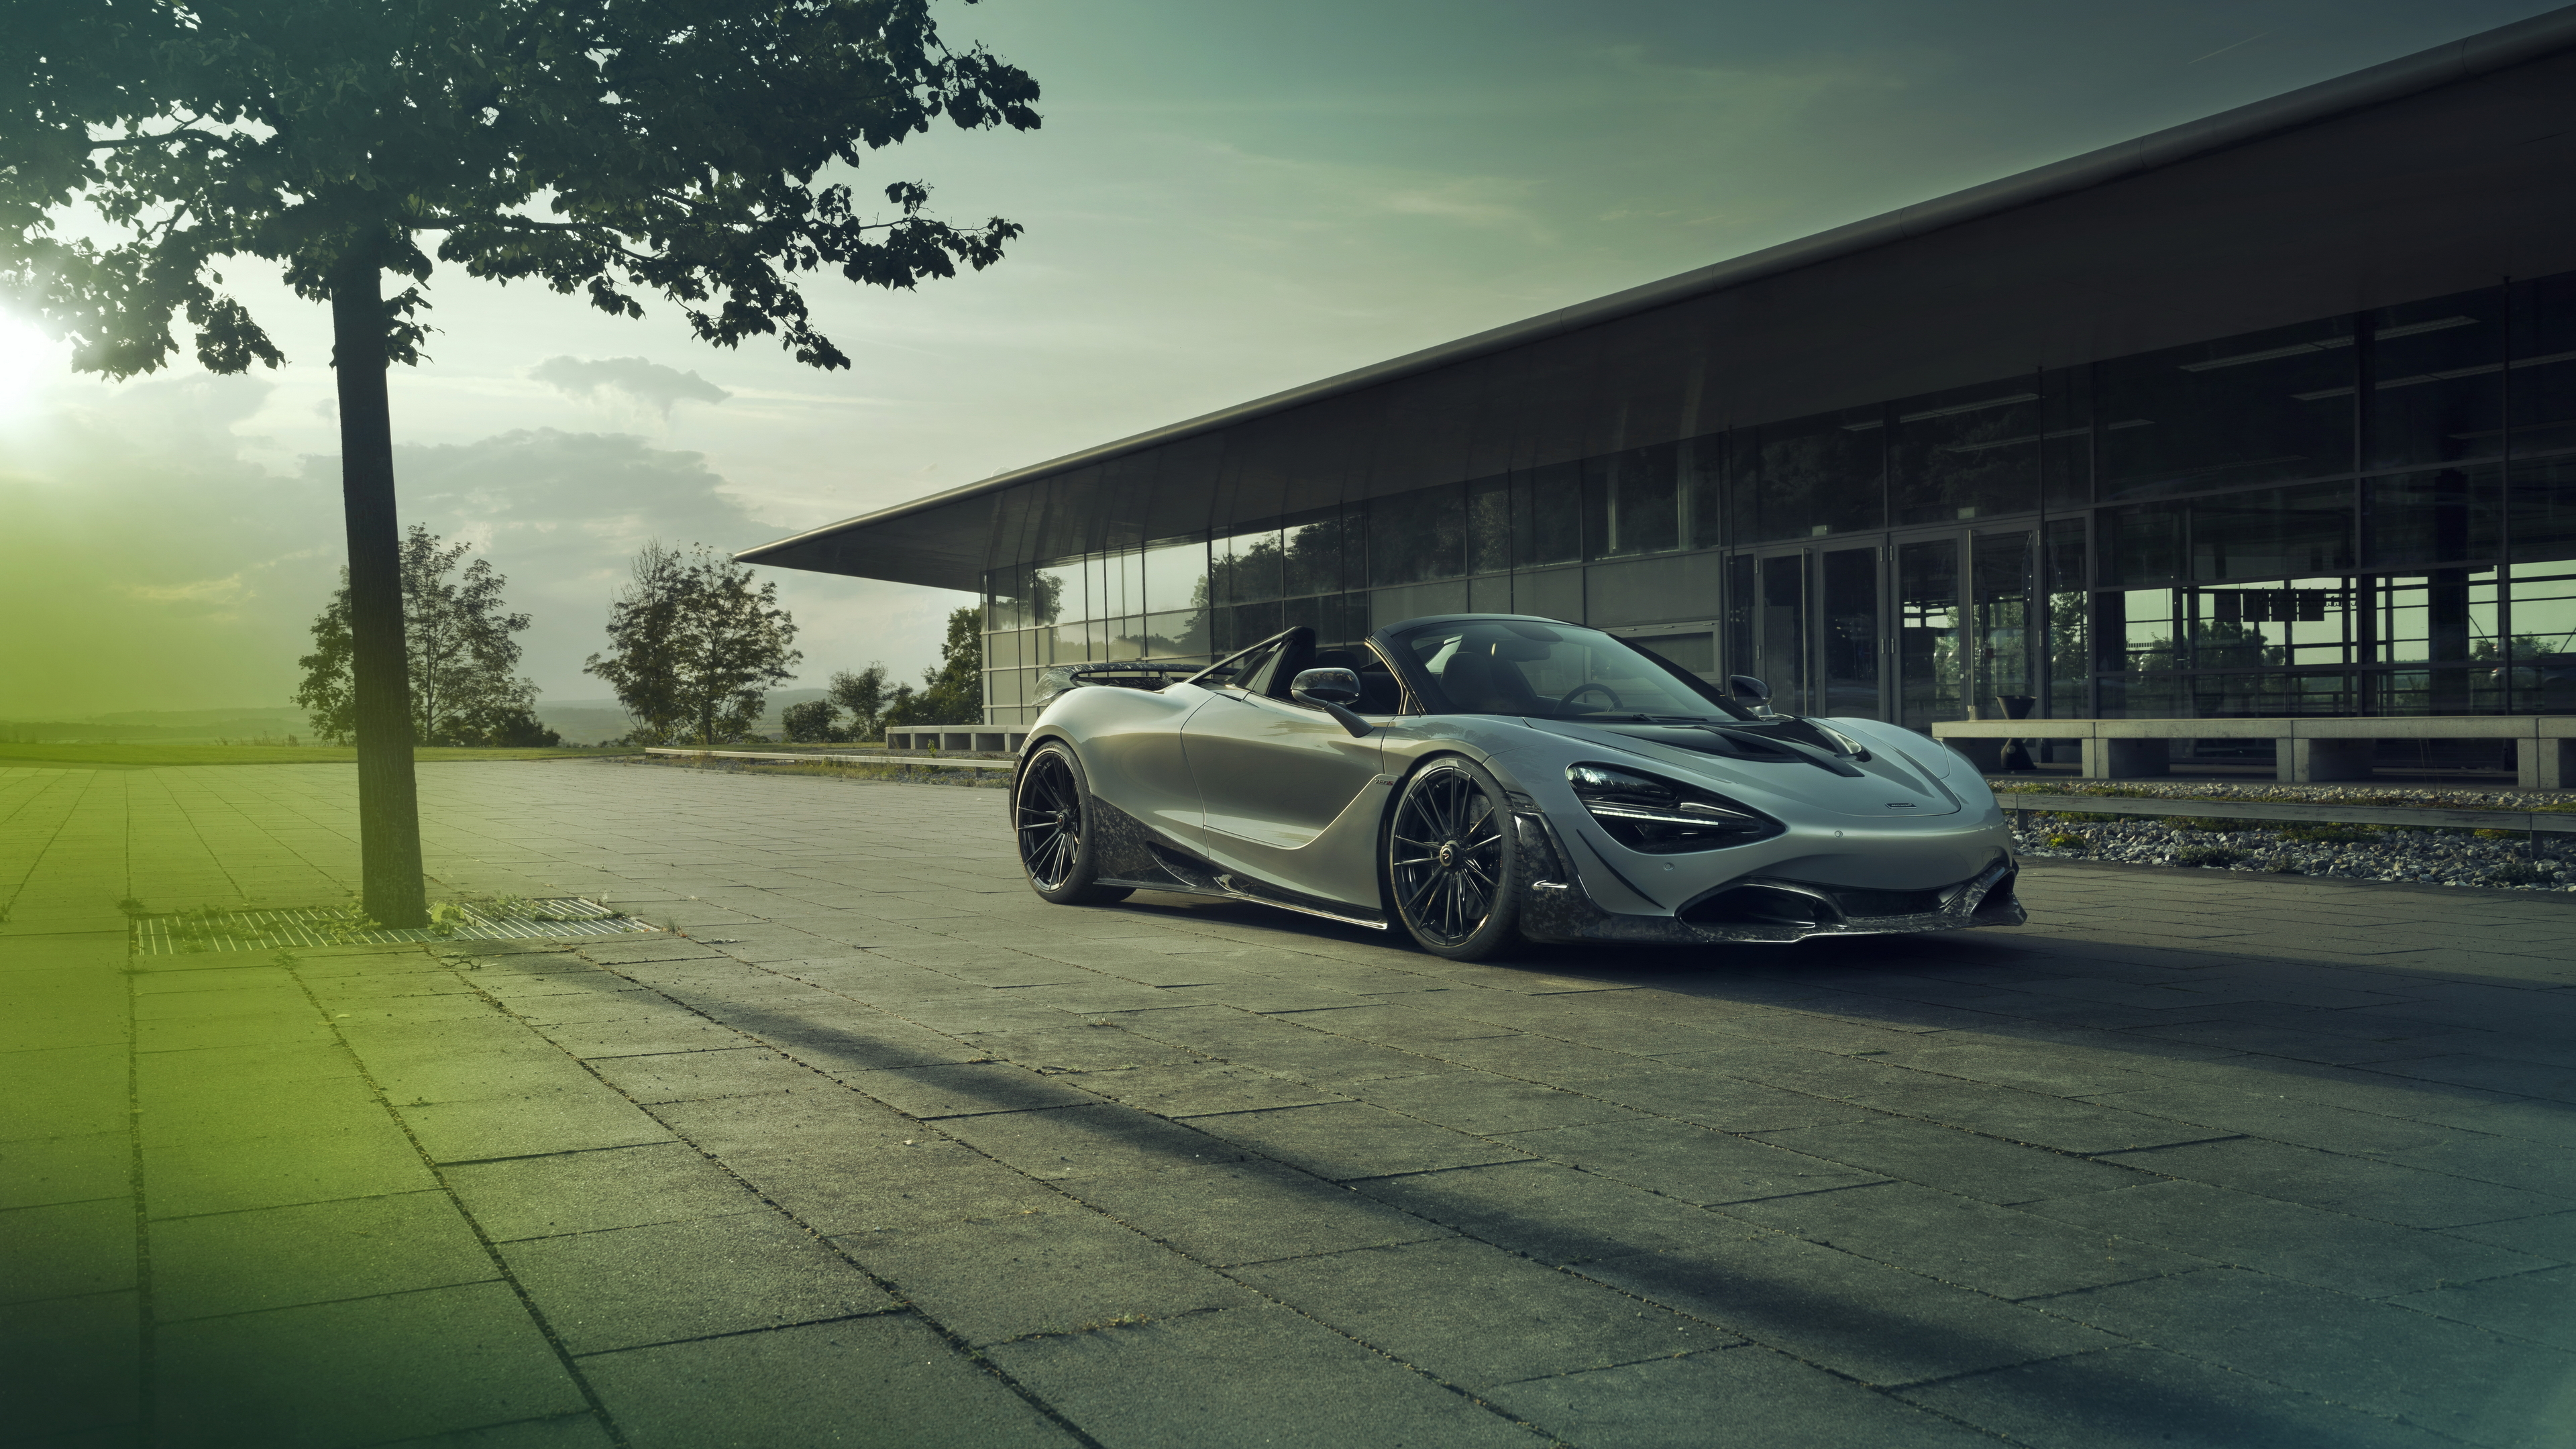 novitec mclaren 720s spider 2019 1569189241 - Novitec McLaren 720S Spider 2019 - mclaren wallpapers, mclaren 720s wallpapers, hd-wallpapers, cars wallpapers, 5k wallpapers, 4k-wallpapers, 2019 cars wallpapers